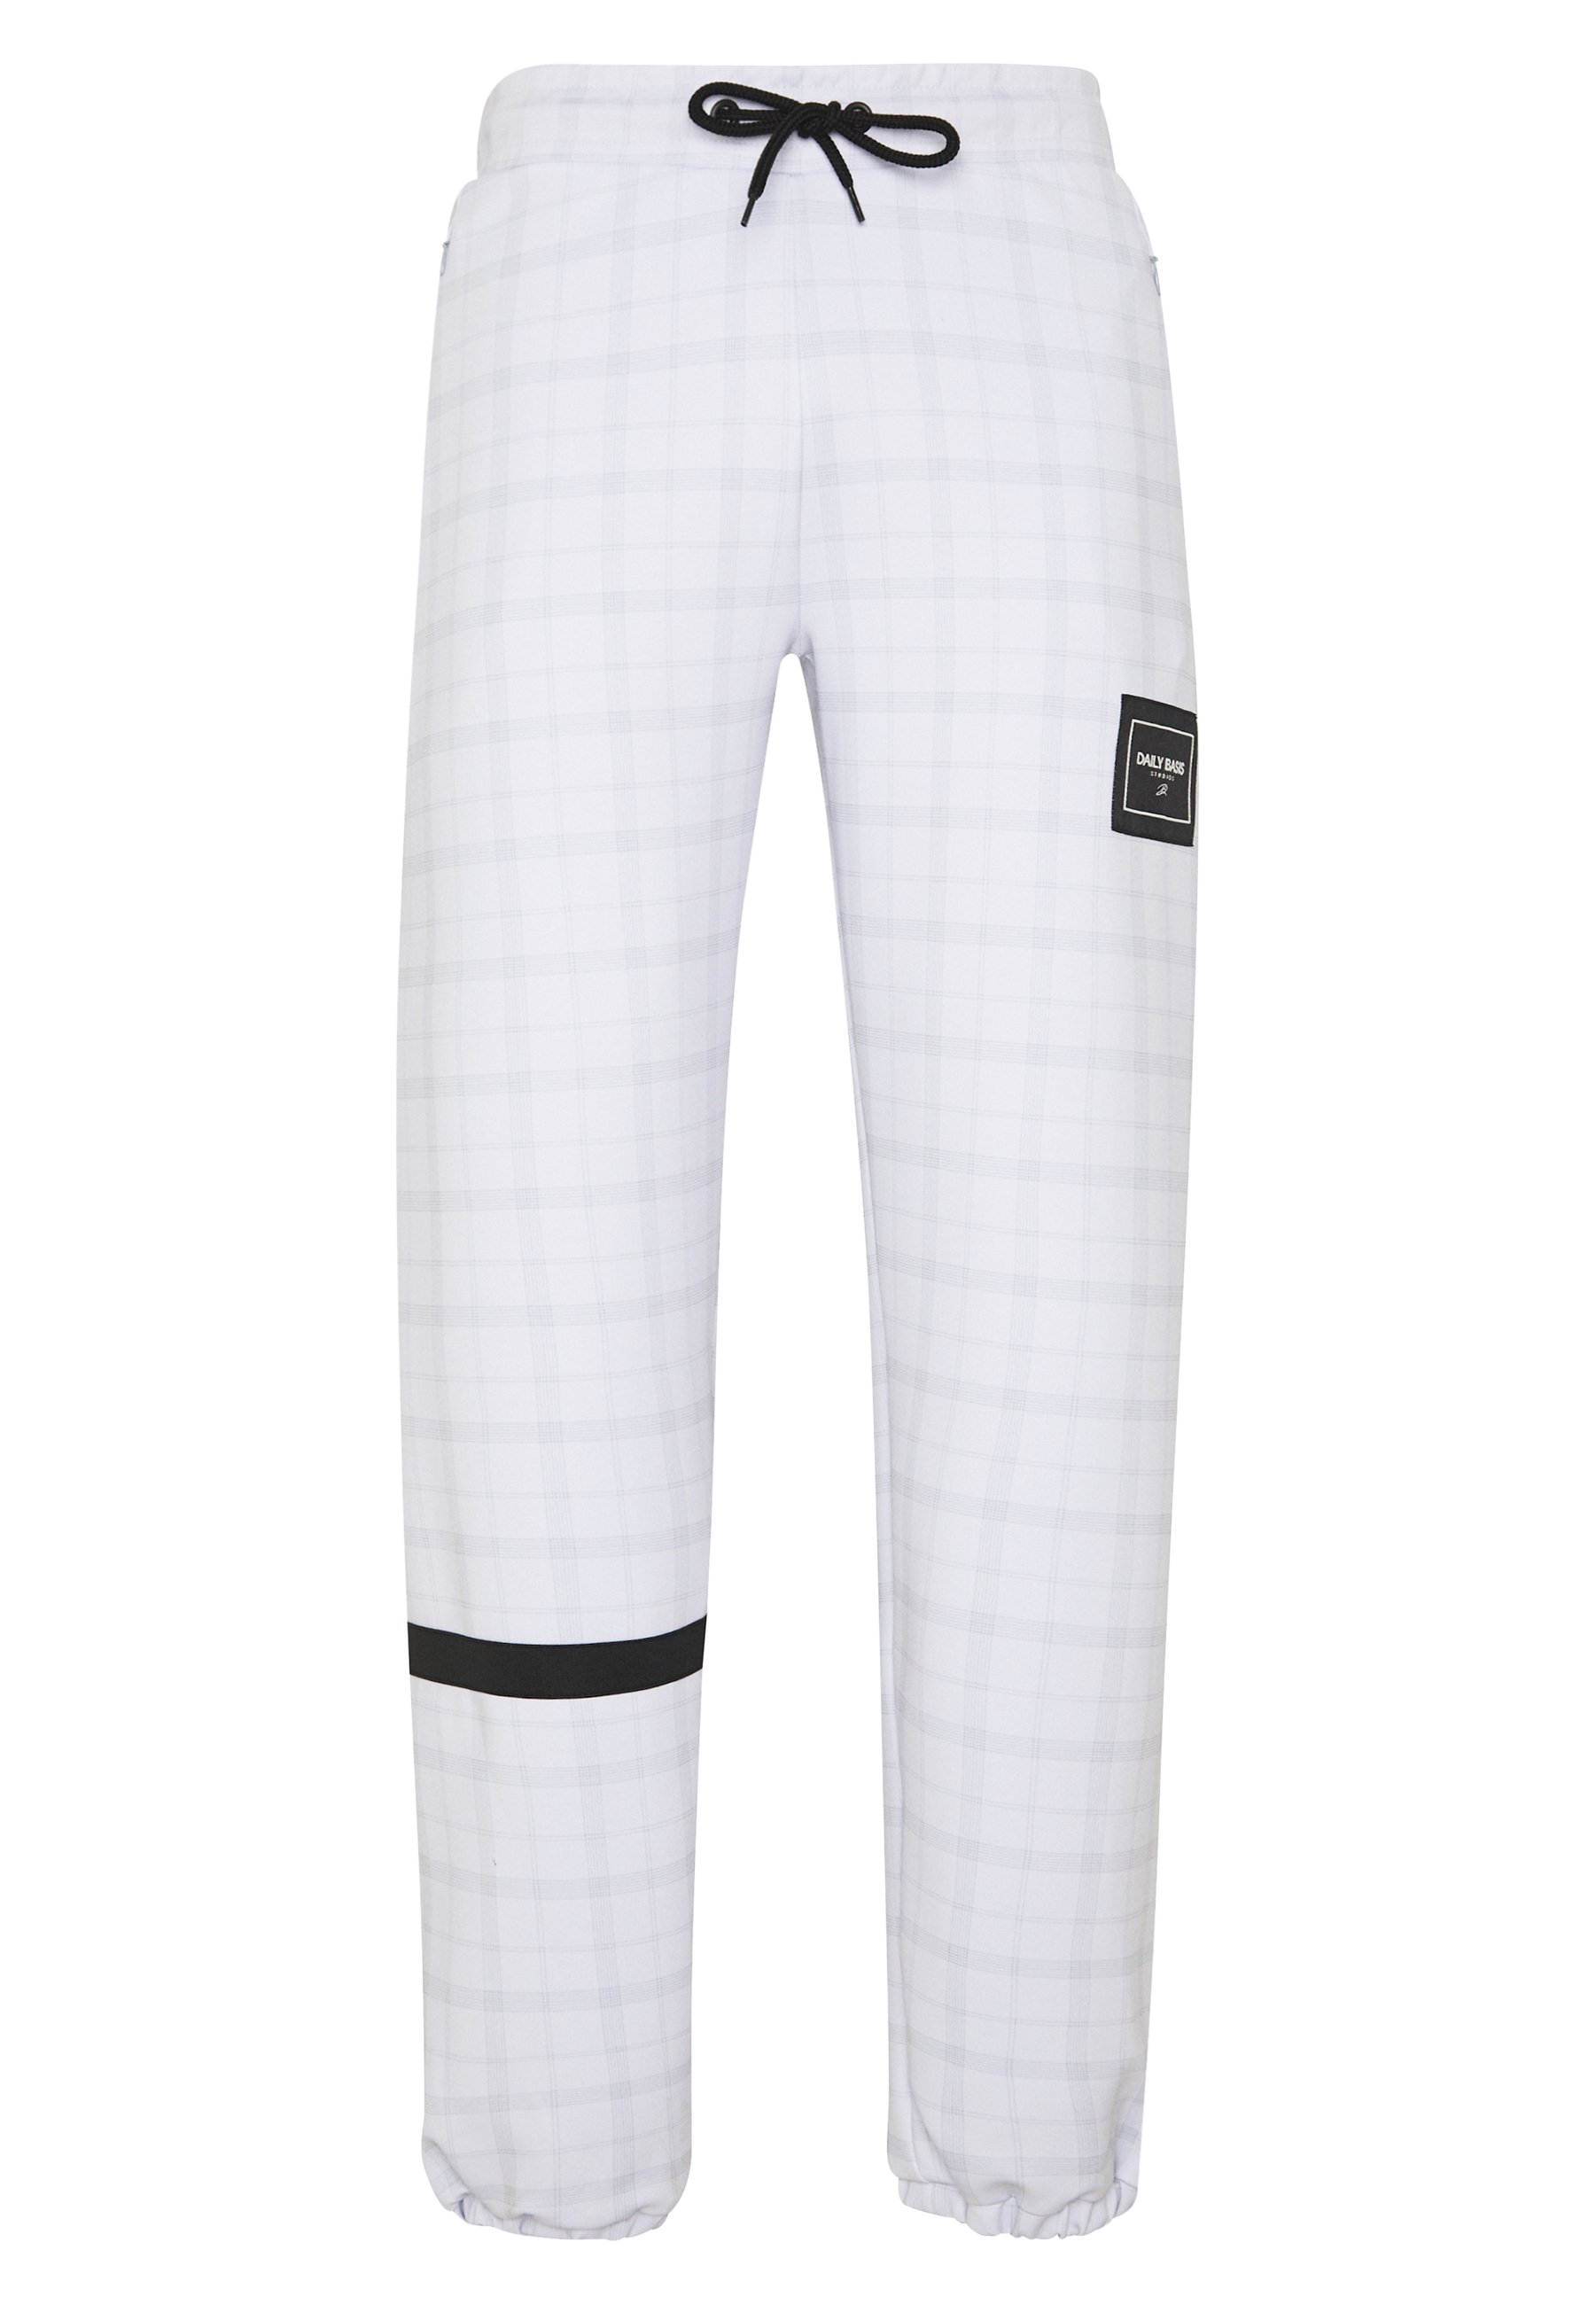 Daily Basis Studios Joggers In Tech Check - Träningsbyxor White